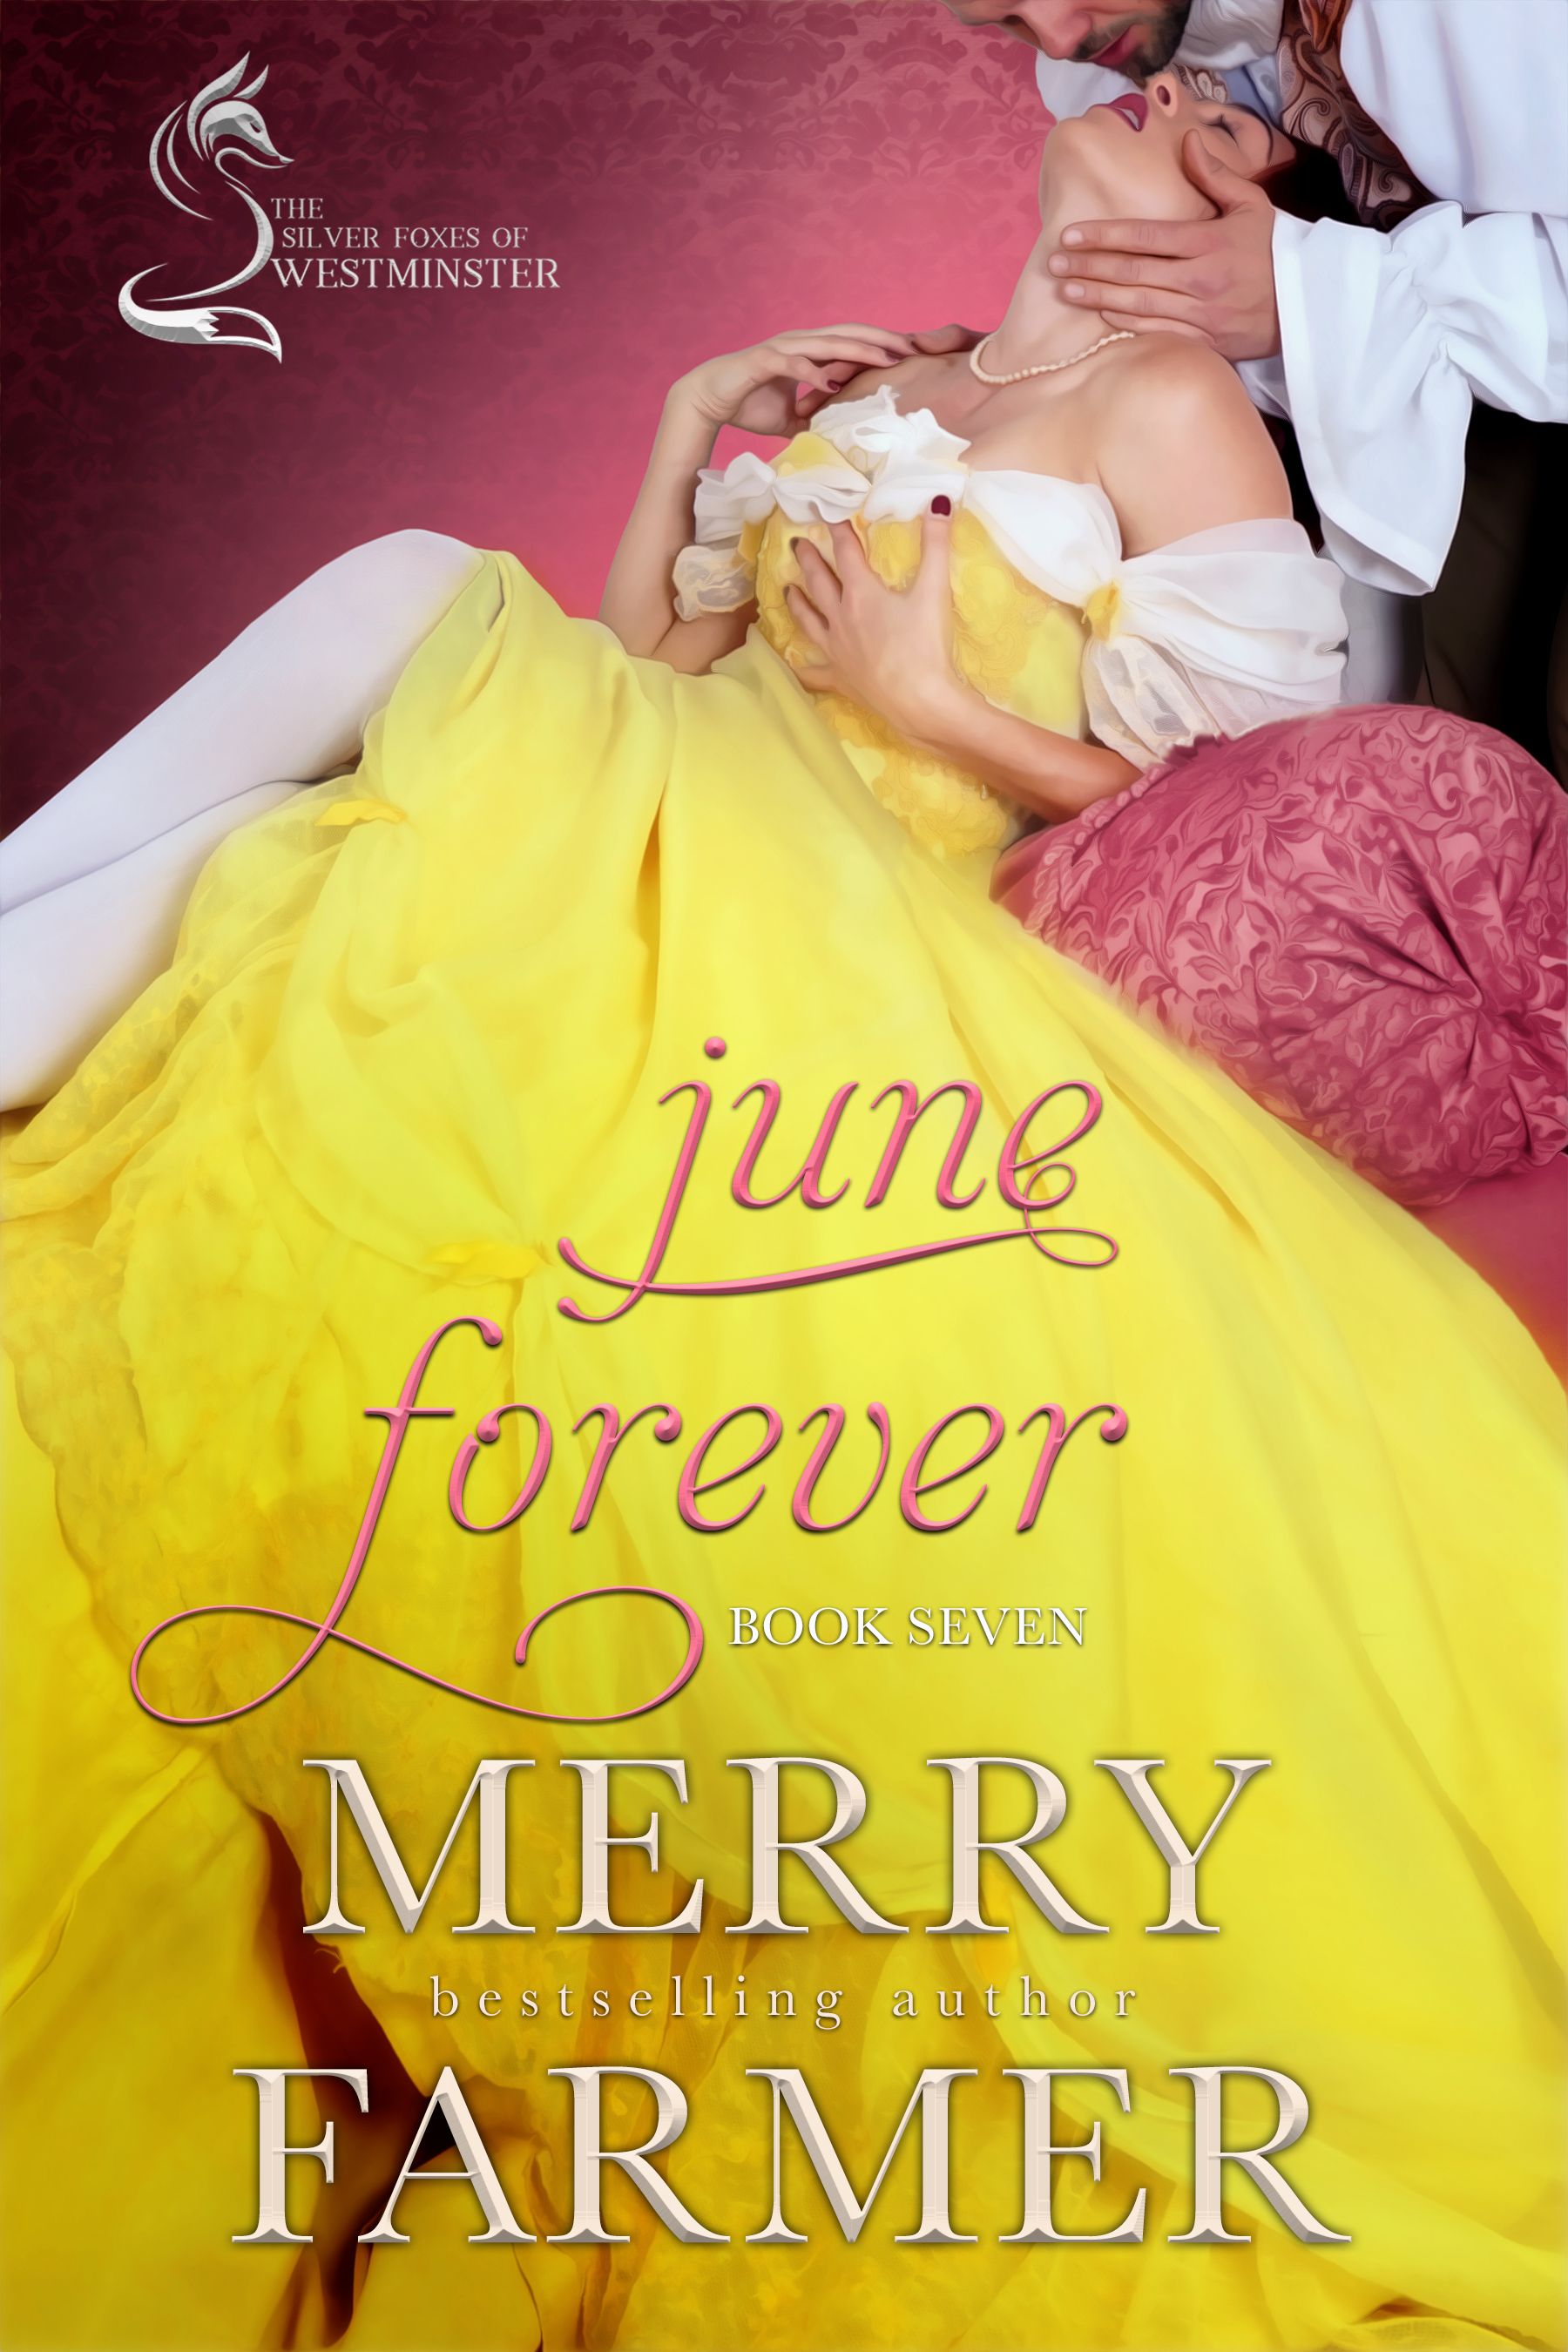 June Forever (Book Seven) - Miss Victoria Travers's life was over. After being traumatized at the hands of a man years ago, she has secluded herself at Starcross Castle, helping her sister, Lady Mariah, raise her growing family. But being an aunt isn't enough for Vicky. She longs for children of her own, but getting them means marriage, and marriage means making herself vulnerable to a man's desires, something she swore she'd never do again.Sir Christopher Dowland is widely considered the most mild-mannered, bland gentleman in Cornwall and potentially the perfect husband for Vicky. But Christopher wants to be so much more than the underestimated country squire everyone supposes him to be. He sees himself as a champion of the rights of women, particularly on the eve of a game-changing vote on the Married Women's Property Act. Vicky and Christopher enter a businesslike engagement which seems as though it will lead to a boring, passionless marriage…until the two meet while in disguise at a masquerade ball, and everything changes. While Christopher knows full well who Vicky is, she is swept off her feet by the dashing and gallant mystery man who makes her smile, laugh, and feel free for the first time in years. But when their ongoing, masked flirtation takes a turn neither expect, Christopher could find himself both winning the girl and losing her forever at the same time….PLEASE BE ADVISED: Steam Level – Very Hot